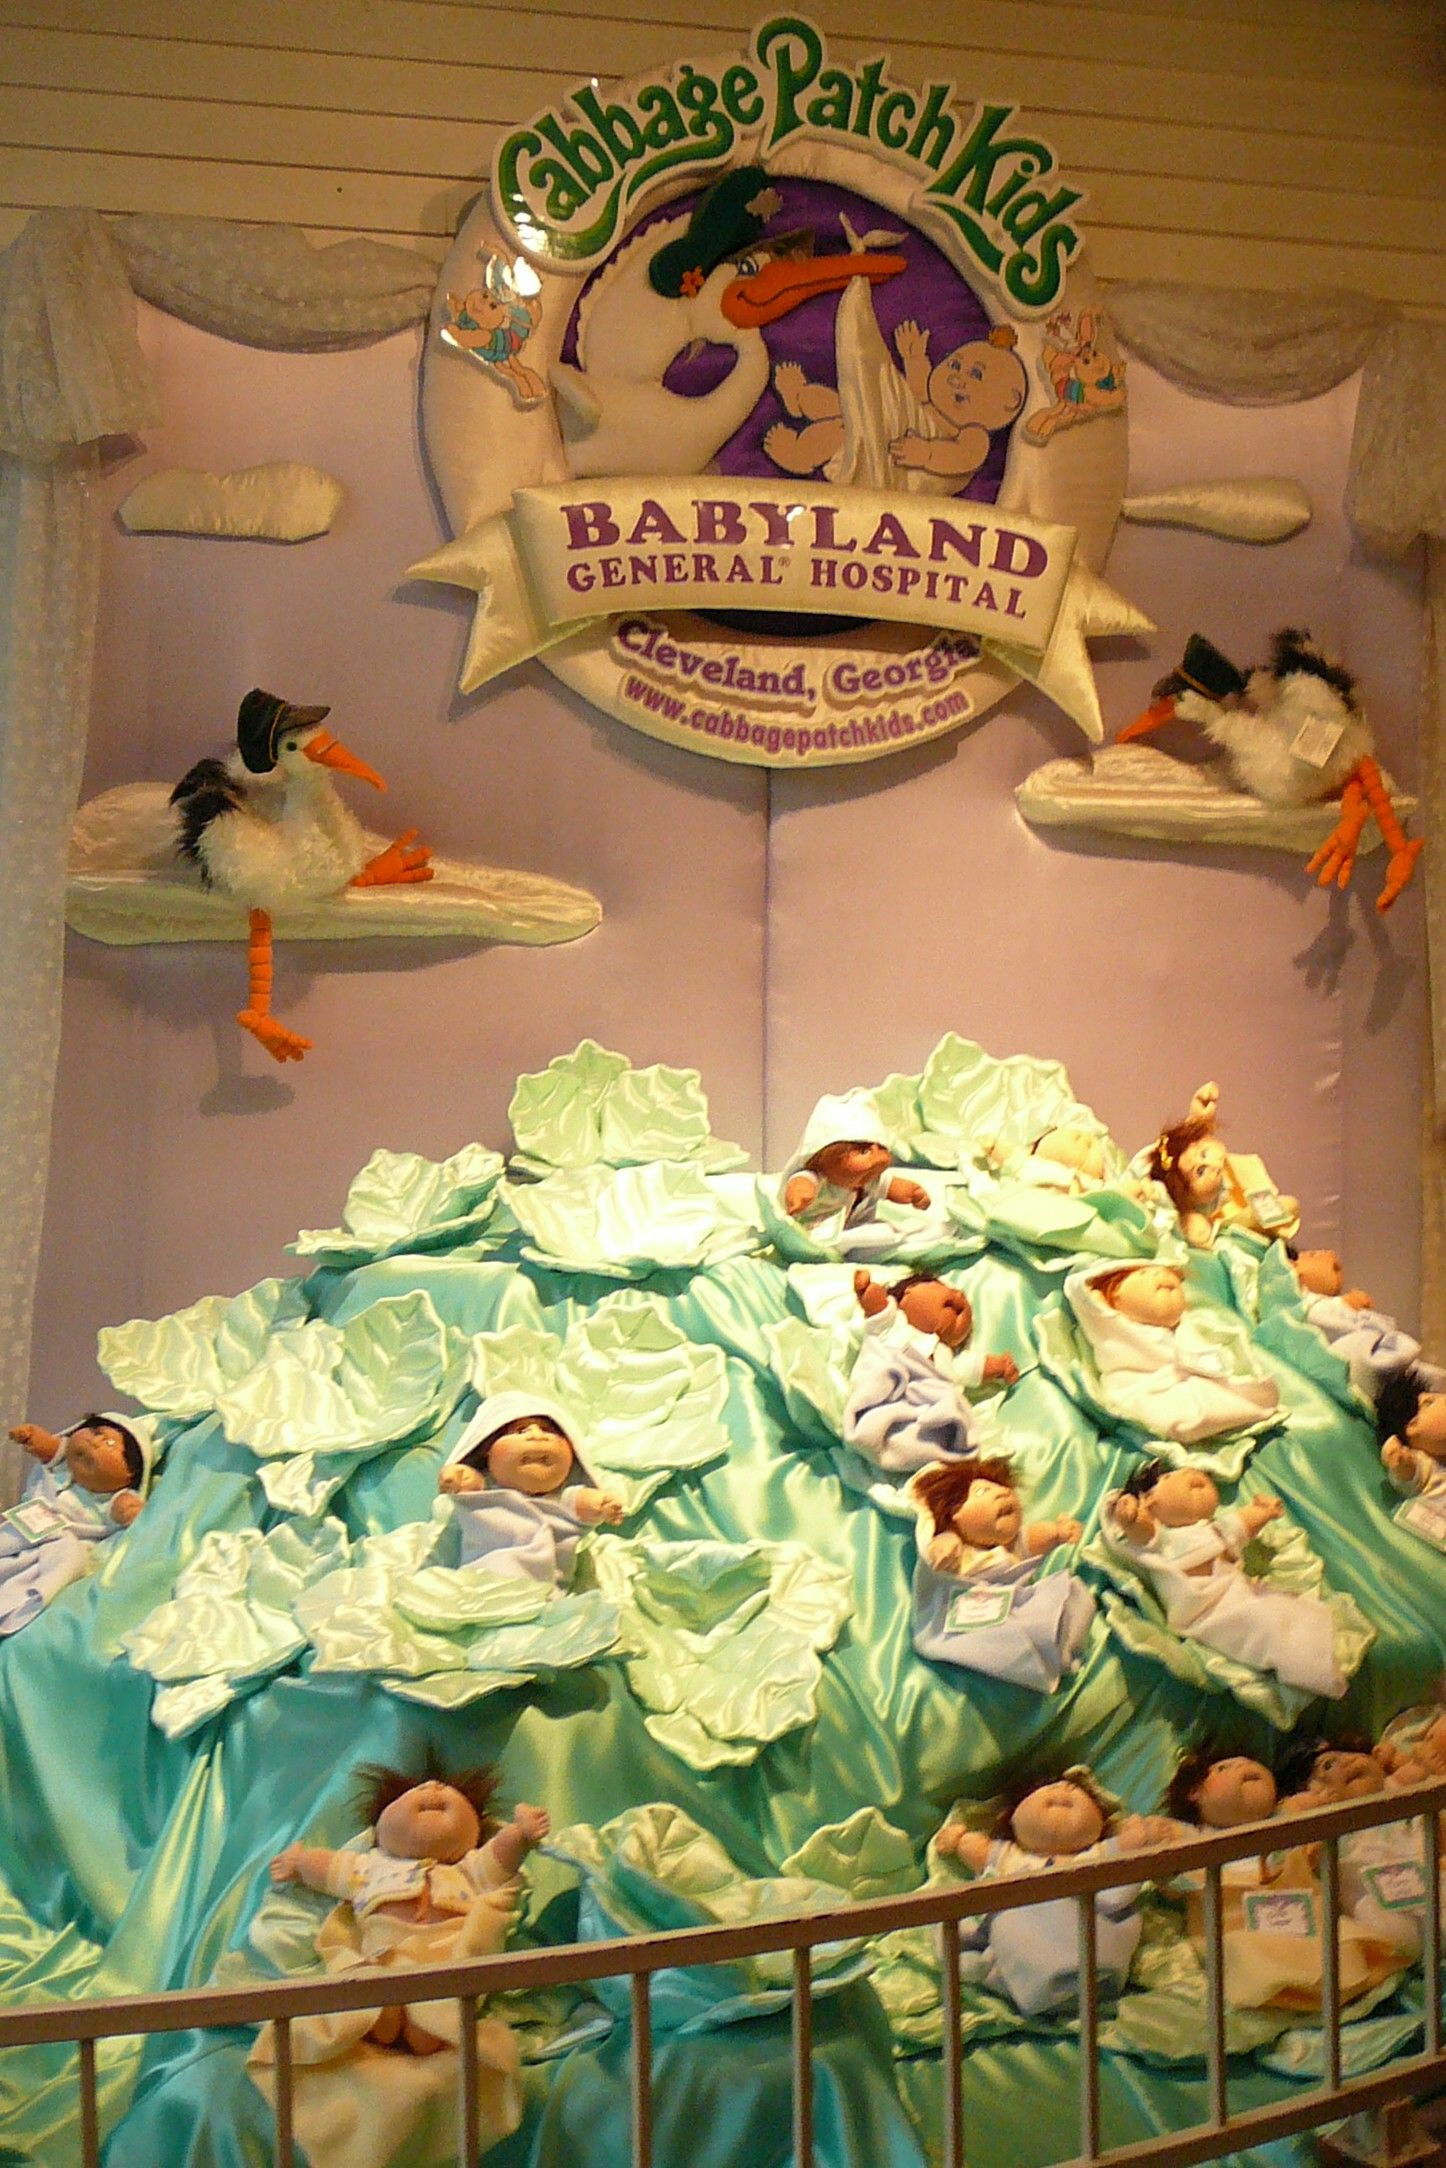 Pin By Melinda Carson On These United States Cabbage Patch Kids Cabbage Patch Babies Visit Georgia